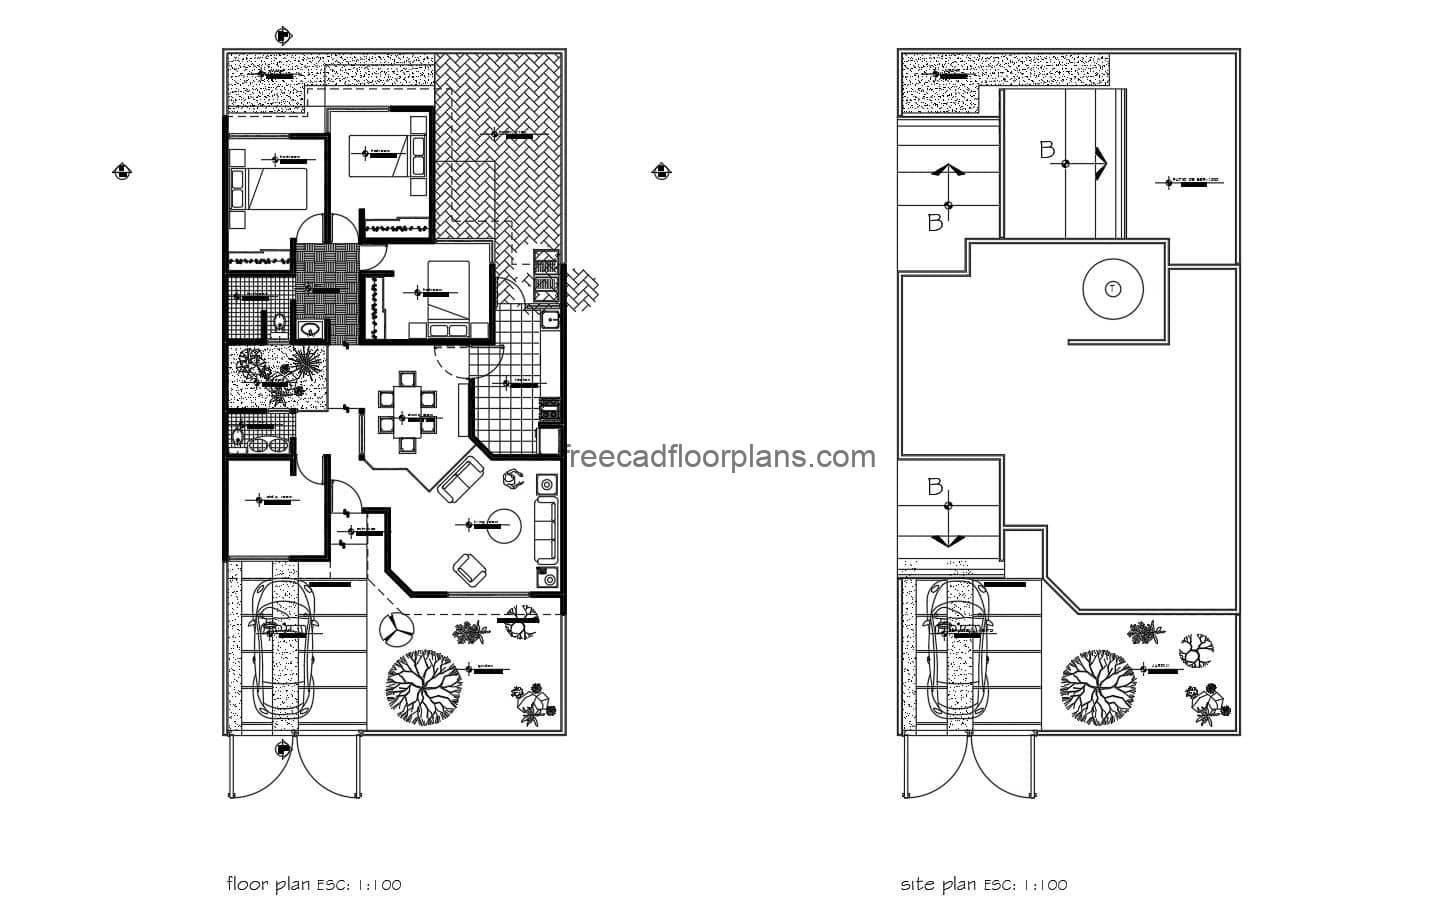 Single level house with three bedrooms in total, one car garage, front garden area, study room, living room, dining room, kitchen, laundry area, one and a half baths and backyard. 2D plans in Autocad DWG format, architectural plan, sizing, elevations, sections and structural details.